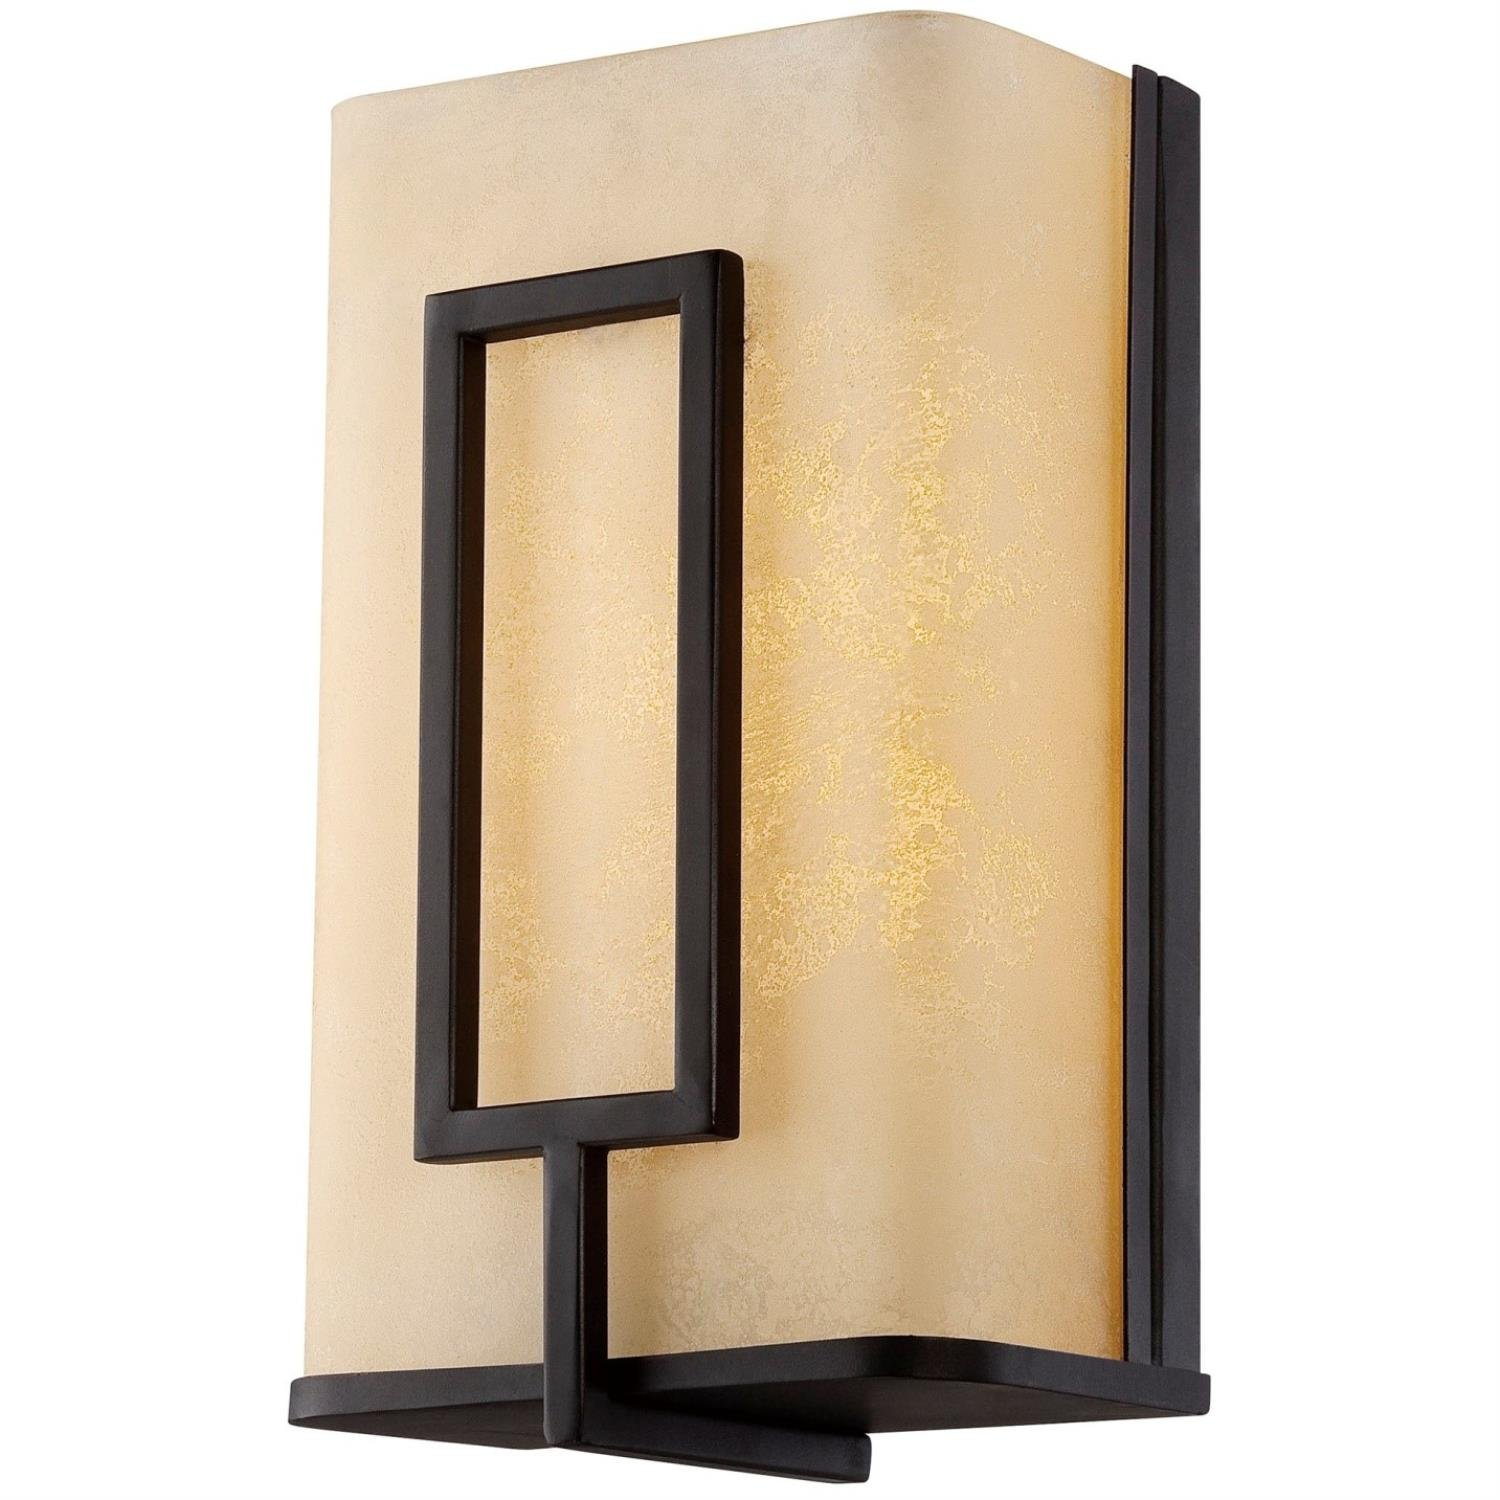 LB74121 LED Wall Sconce, Oil Rubbed Bronze with Amber Alabaster Glass, 10-Inch 3000K Warm White, 550 Lumens, ETL and ENERGY STAR Listed, Dimmable